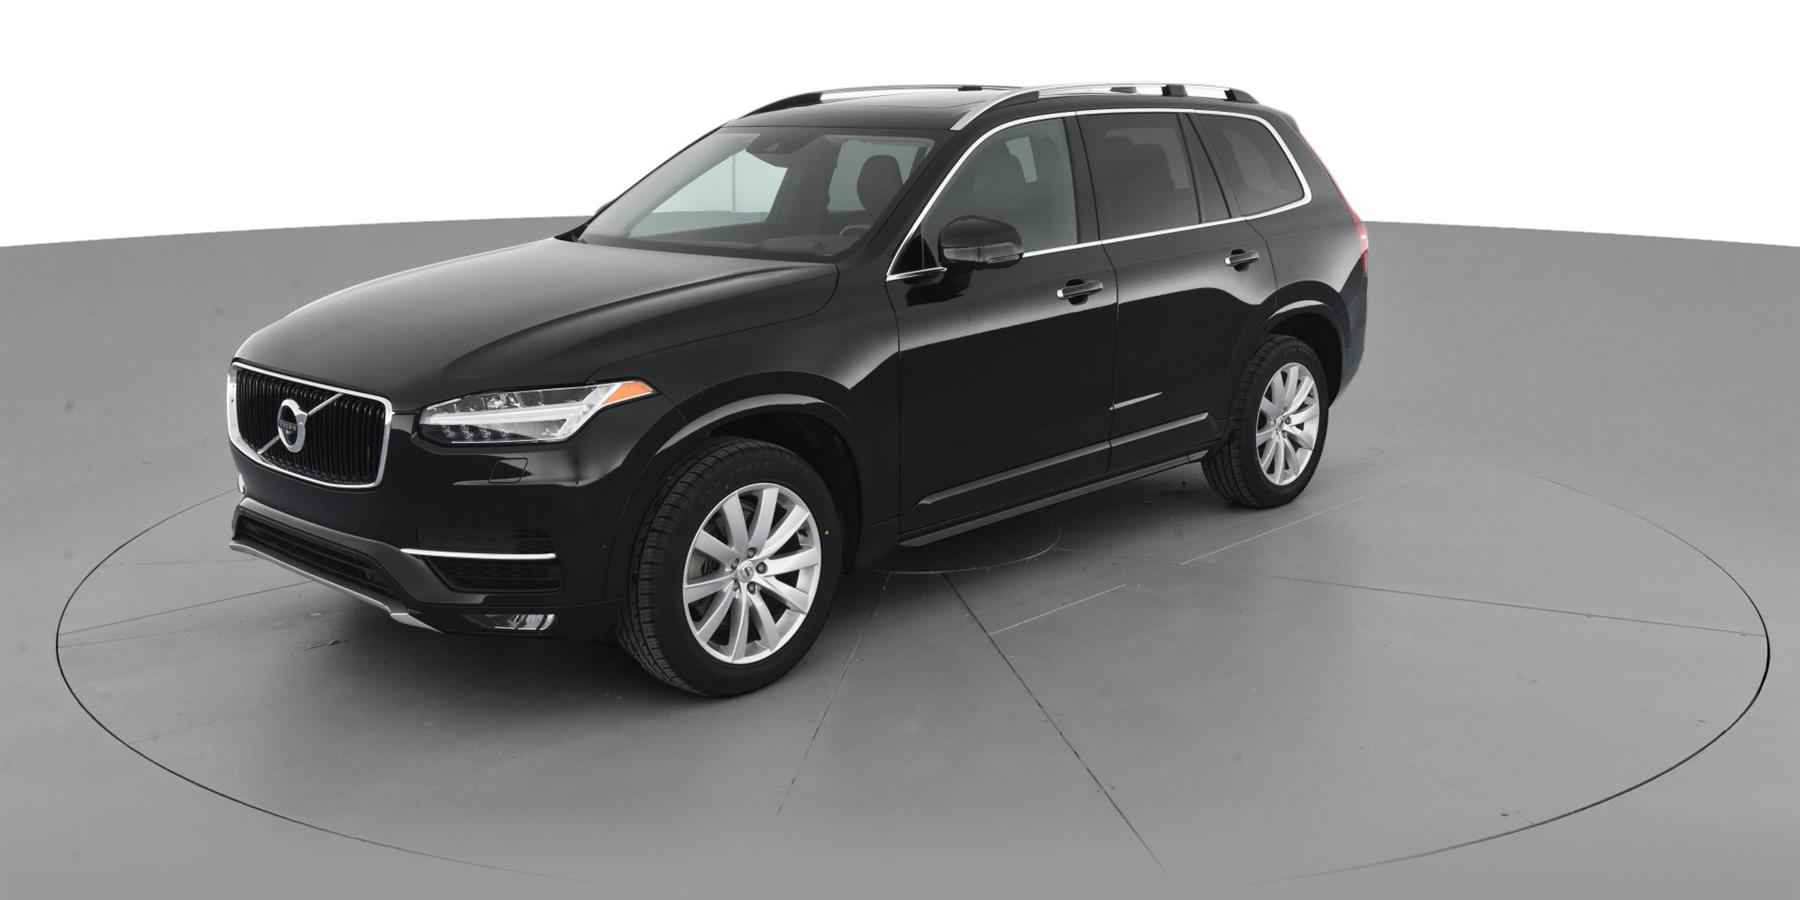 2016 Volvo XC90 T6 Momentum Sport Utility 4D for Sale | Carvana®